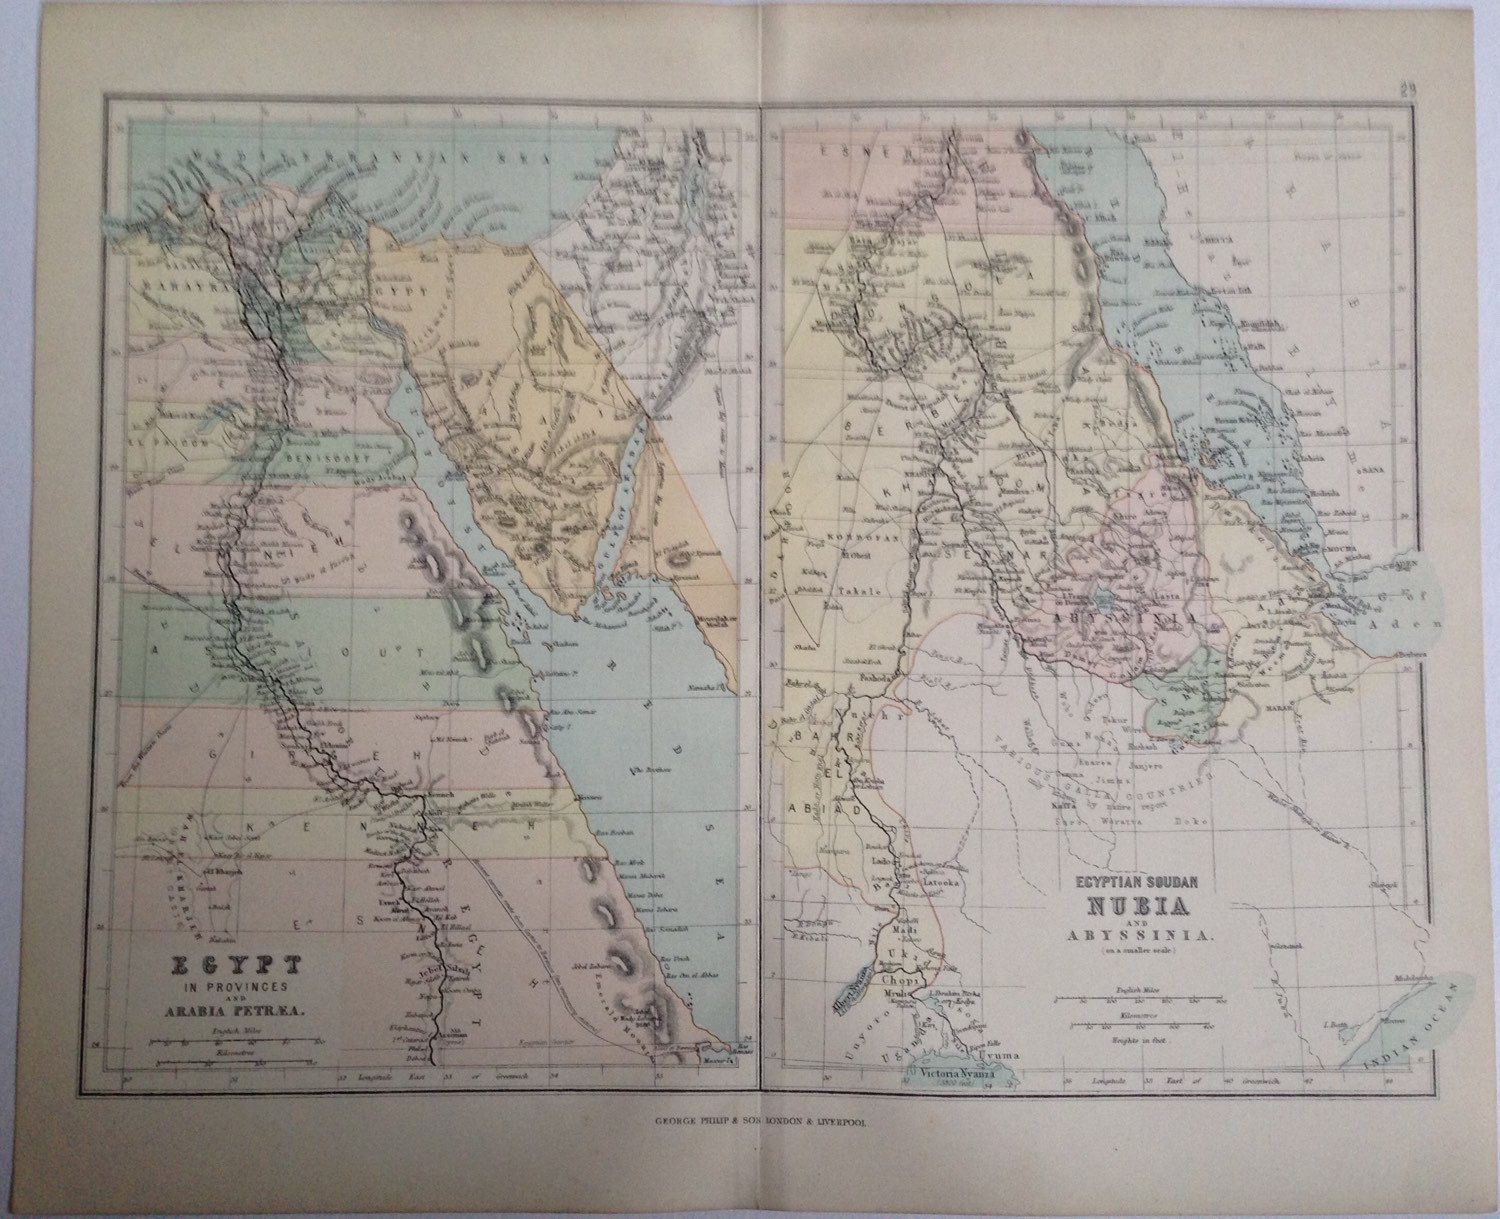 1887 Middle East original antique map colour historical vintage